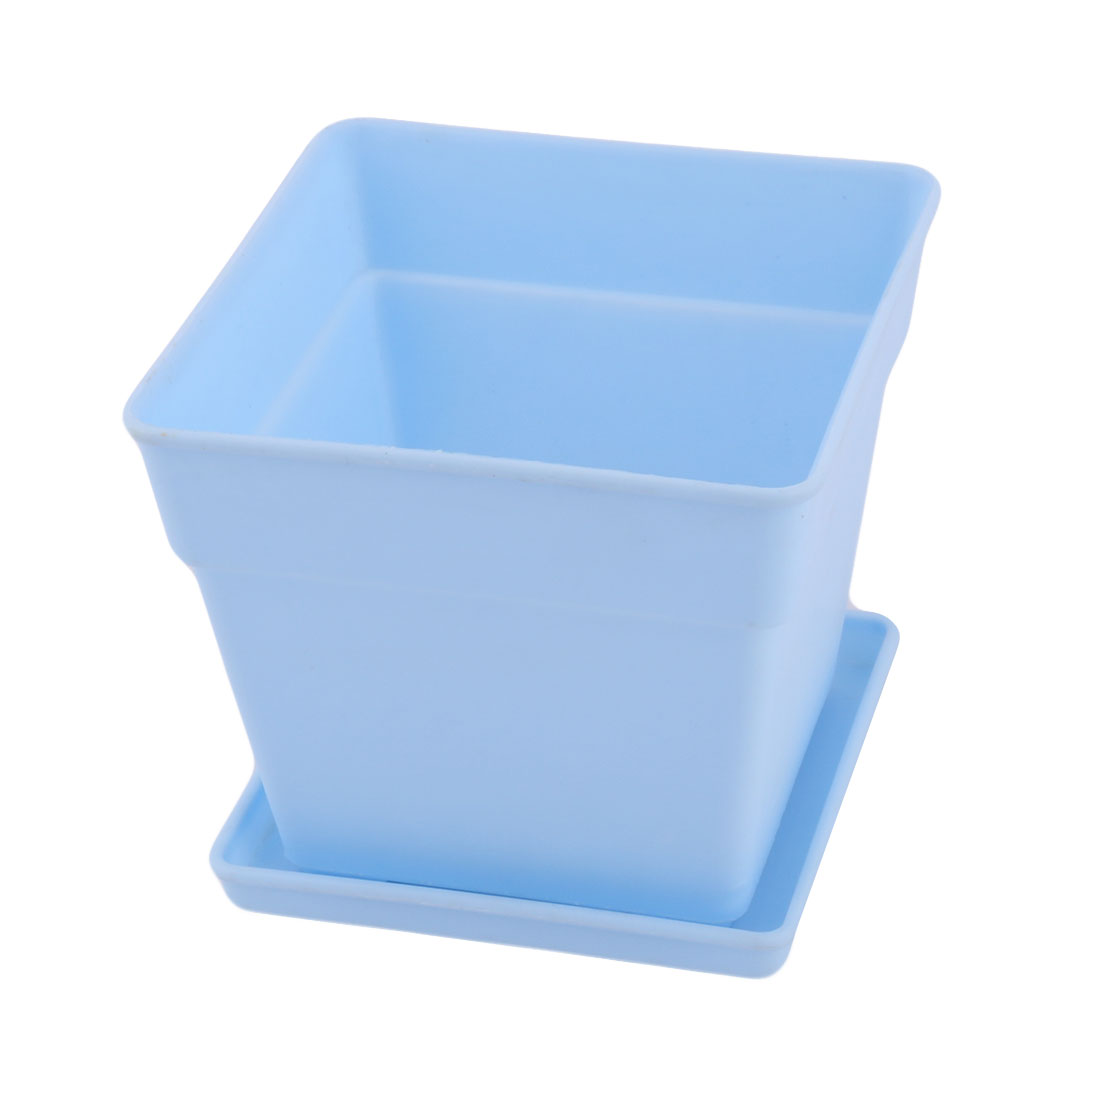 Office Plastic Square Flower Plant Pot Tray Saucer Holder Container Light Blue